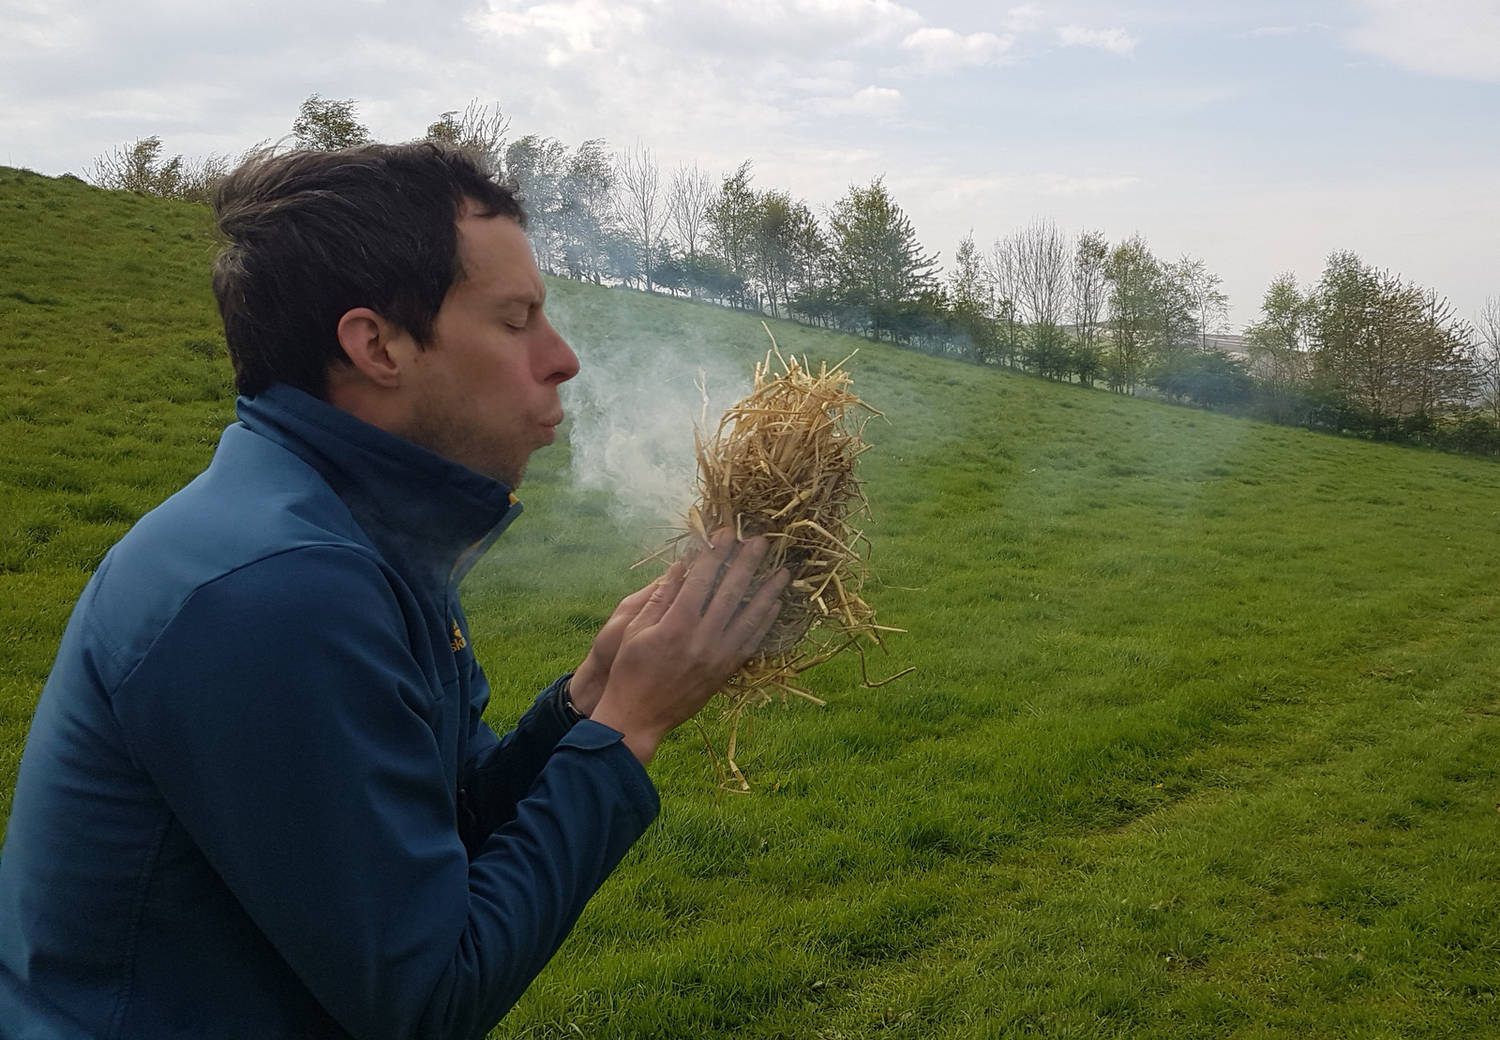 A photograph of a man blowing ona tinder bundle in a field.